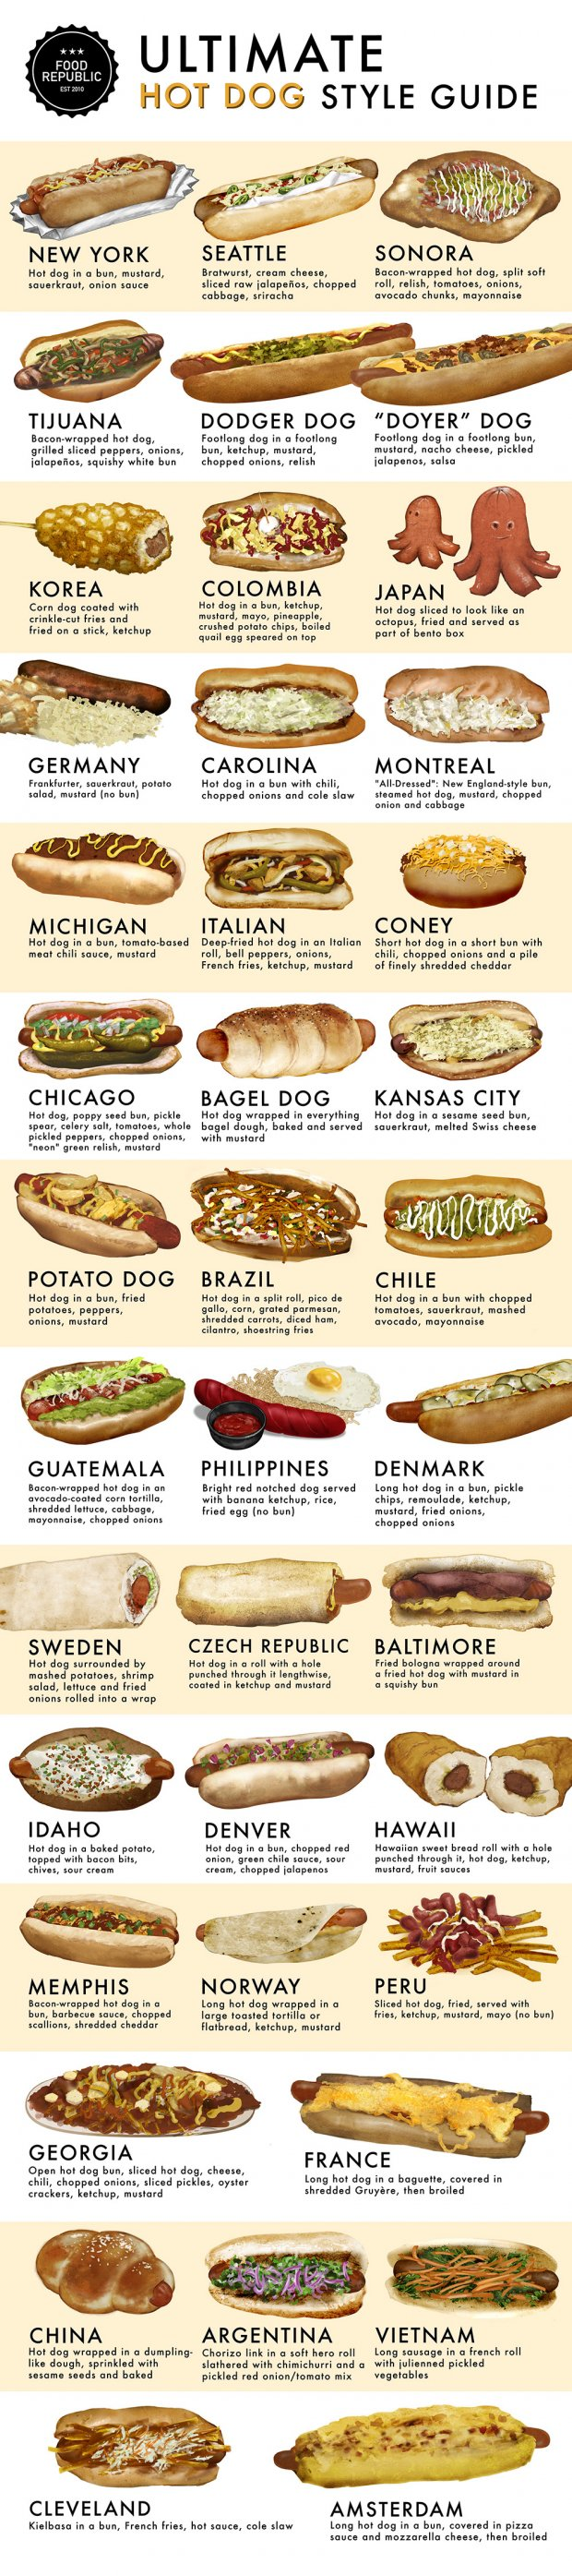 Created by the Food Republic, here's everything you need to know about the 40 varieties of hot dogs from around the globe.